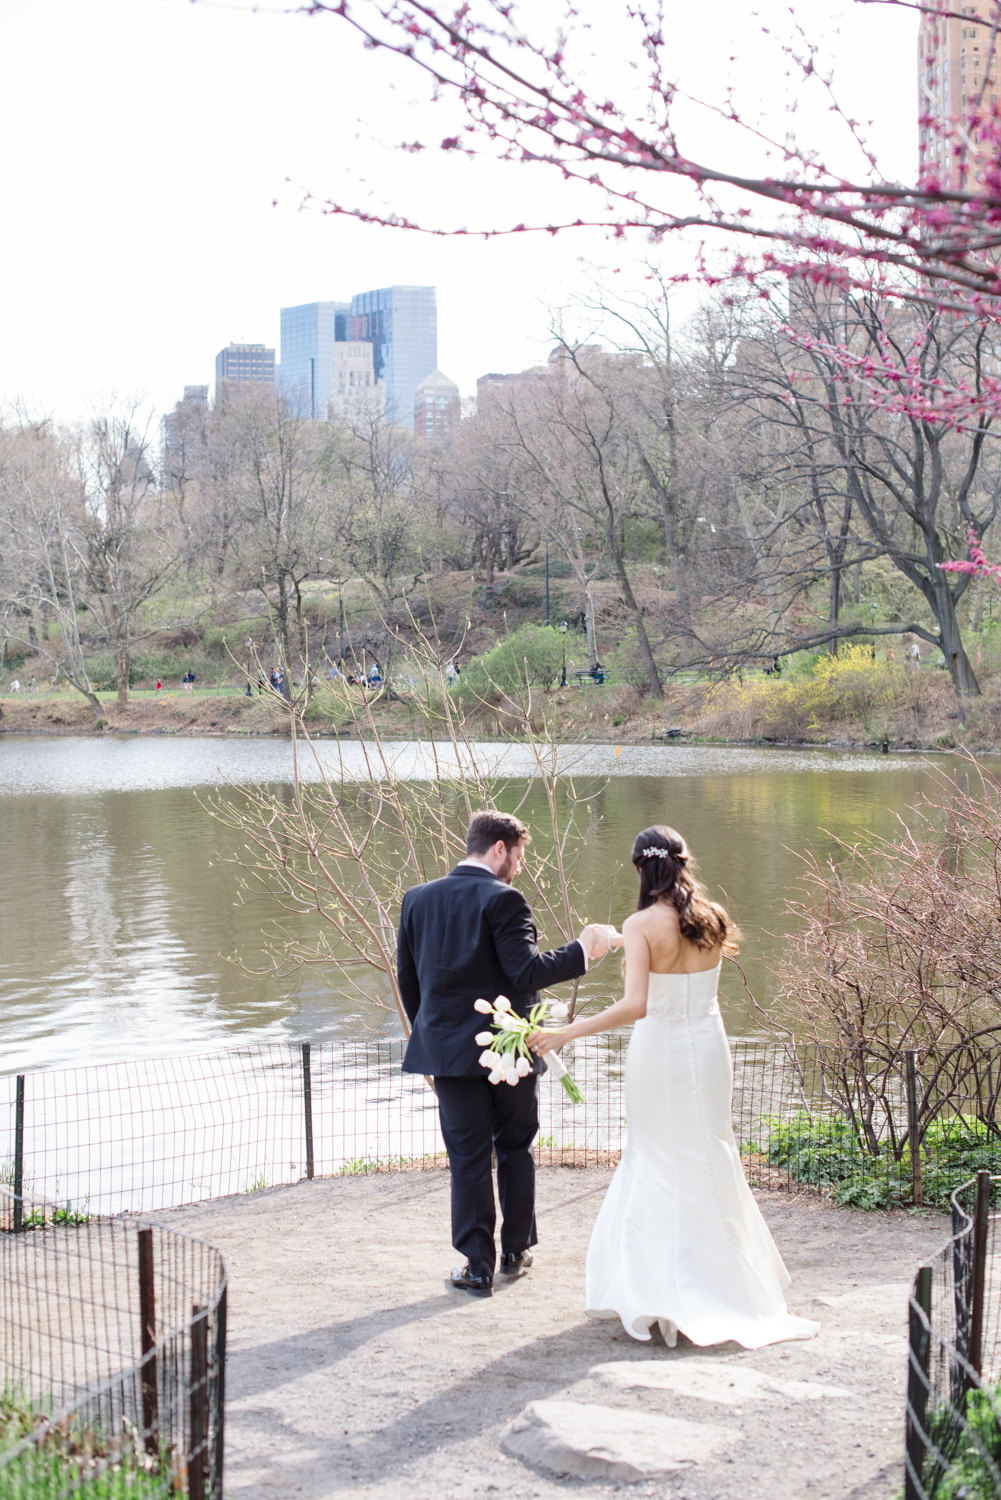 Anahi+David- Central Park Elopement- New York City- Olivia Christina Photo (223).JPG